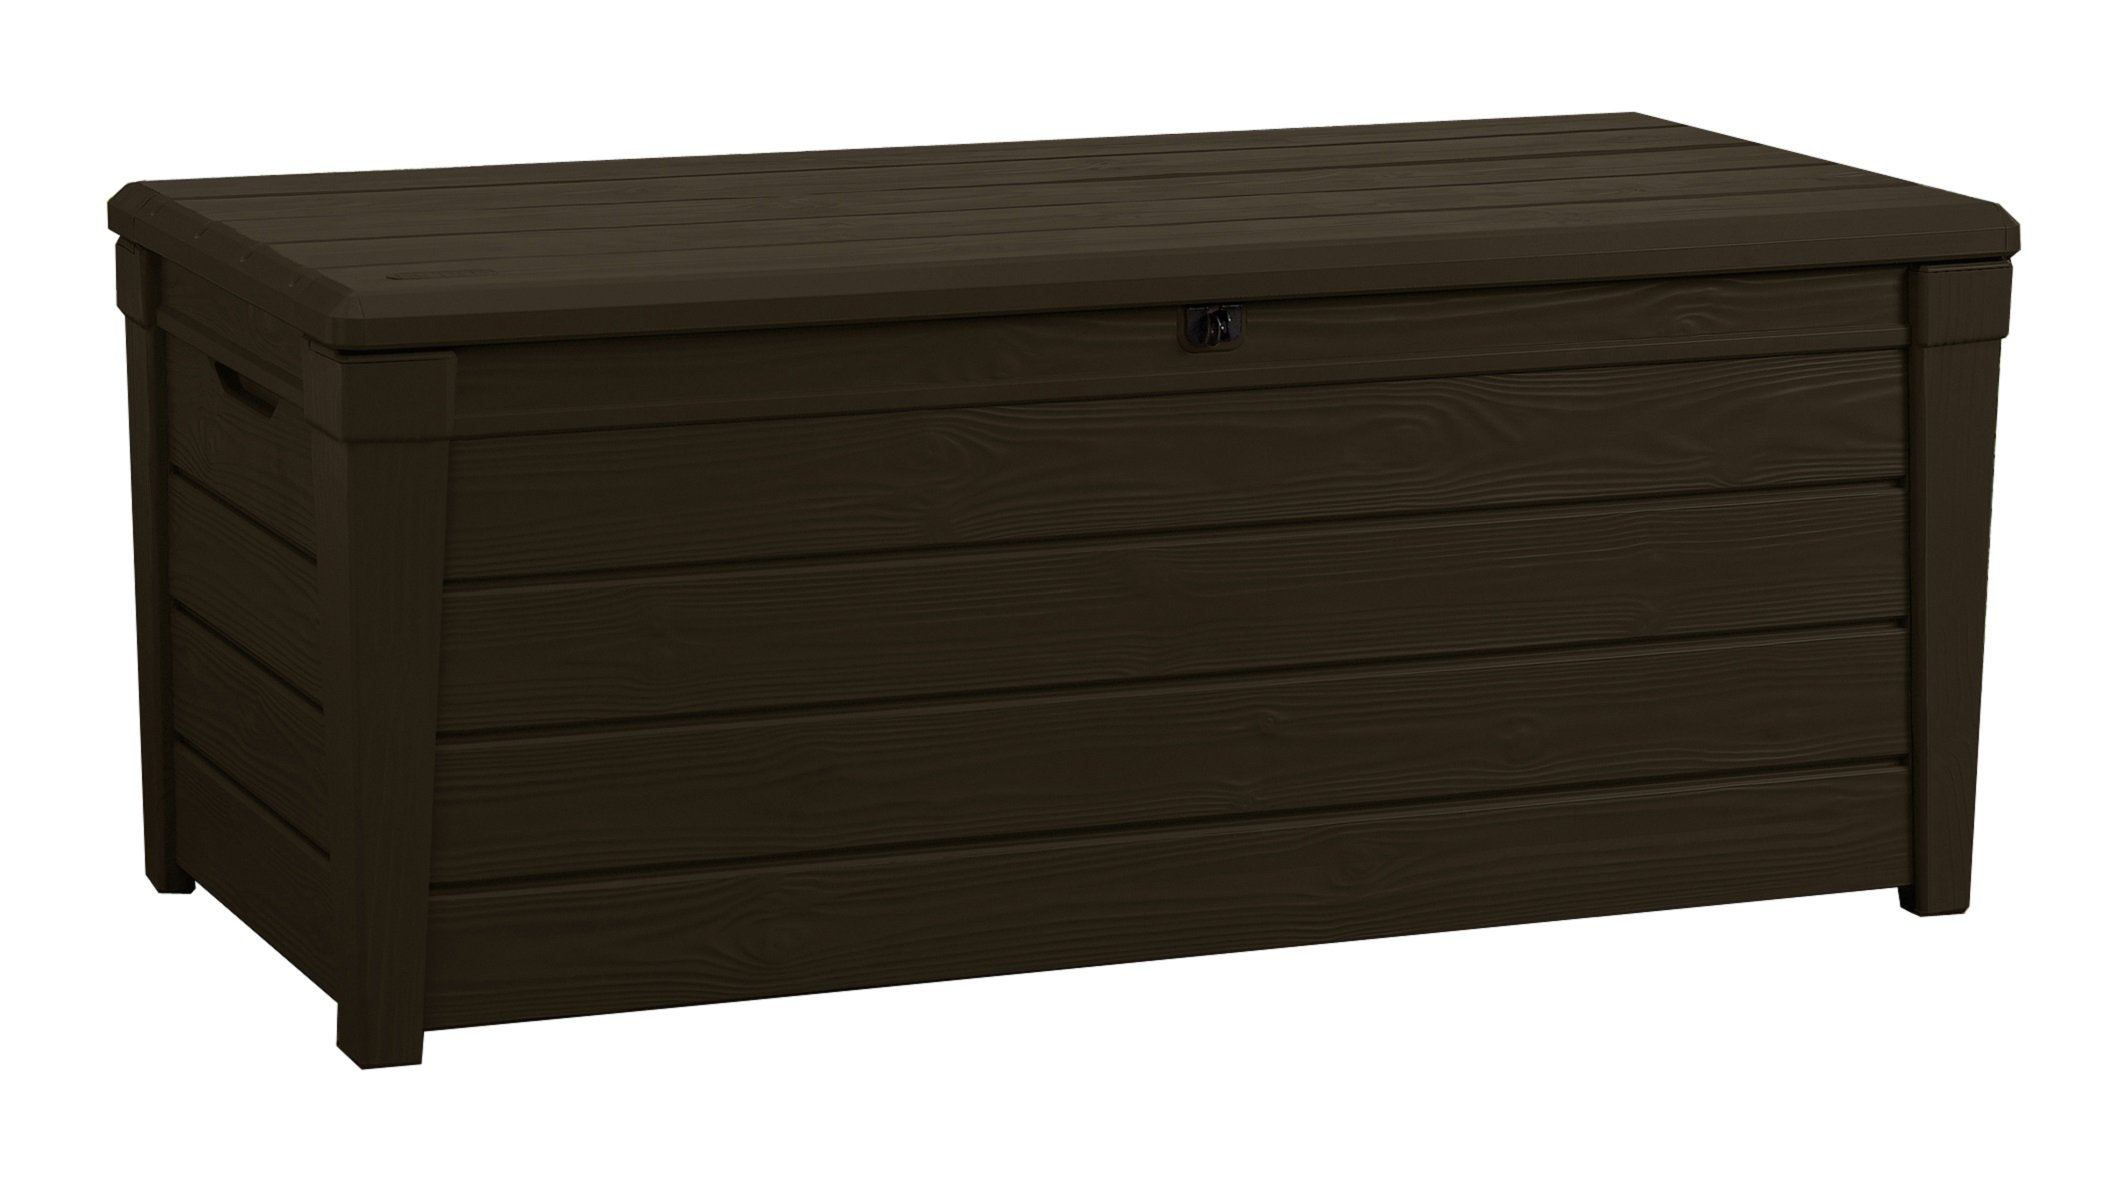 Keter Brightwood Outdoor Plastic Storage Box Garden Furniture 145 X 69 7 X 60 3 Ebay